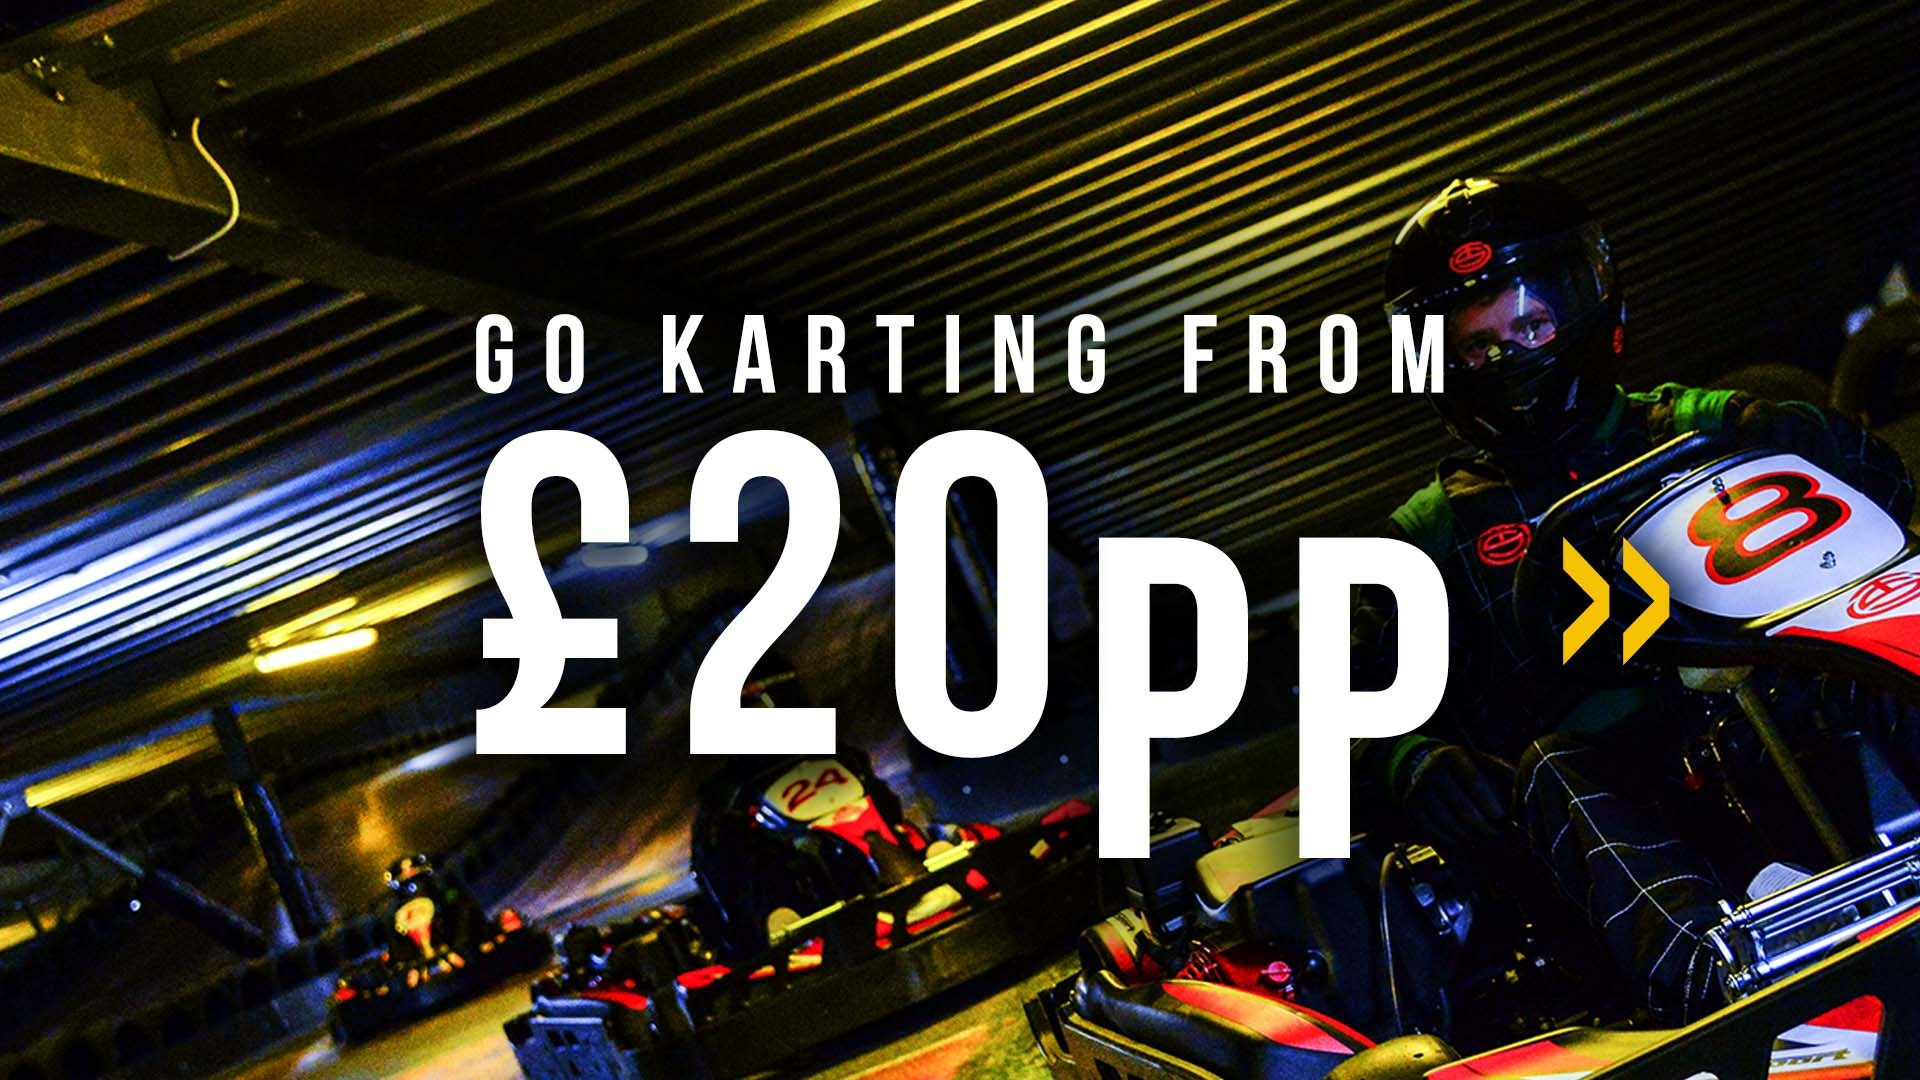 TeamSport_Go_Karting_Mitcham_20_Full_Width_Offer_Banner_1920x1080-min.jpg